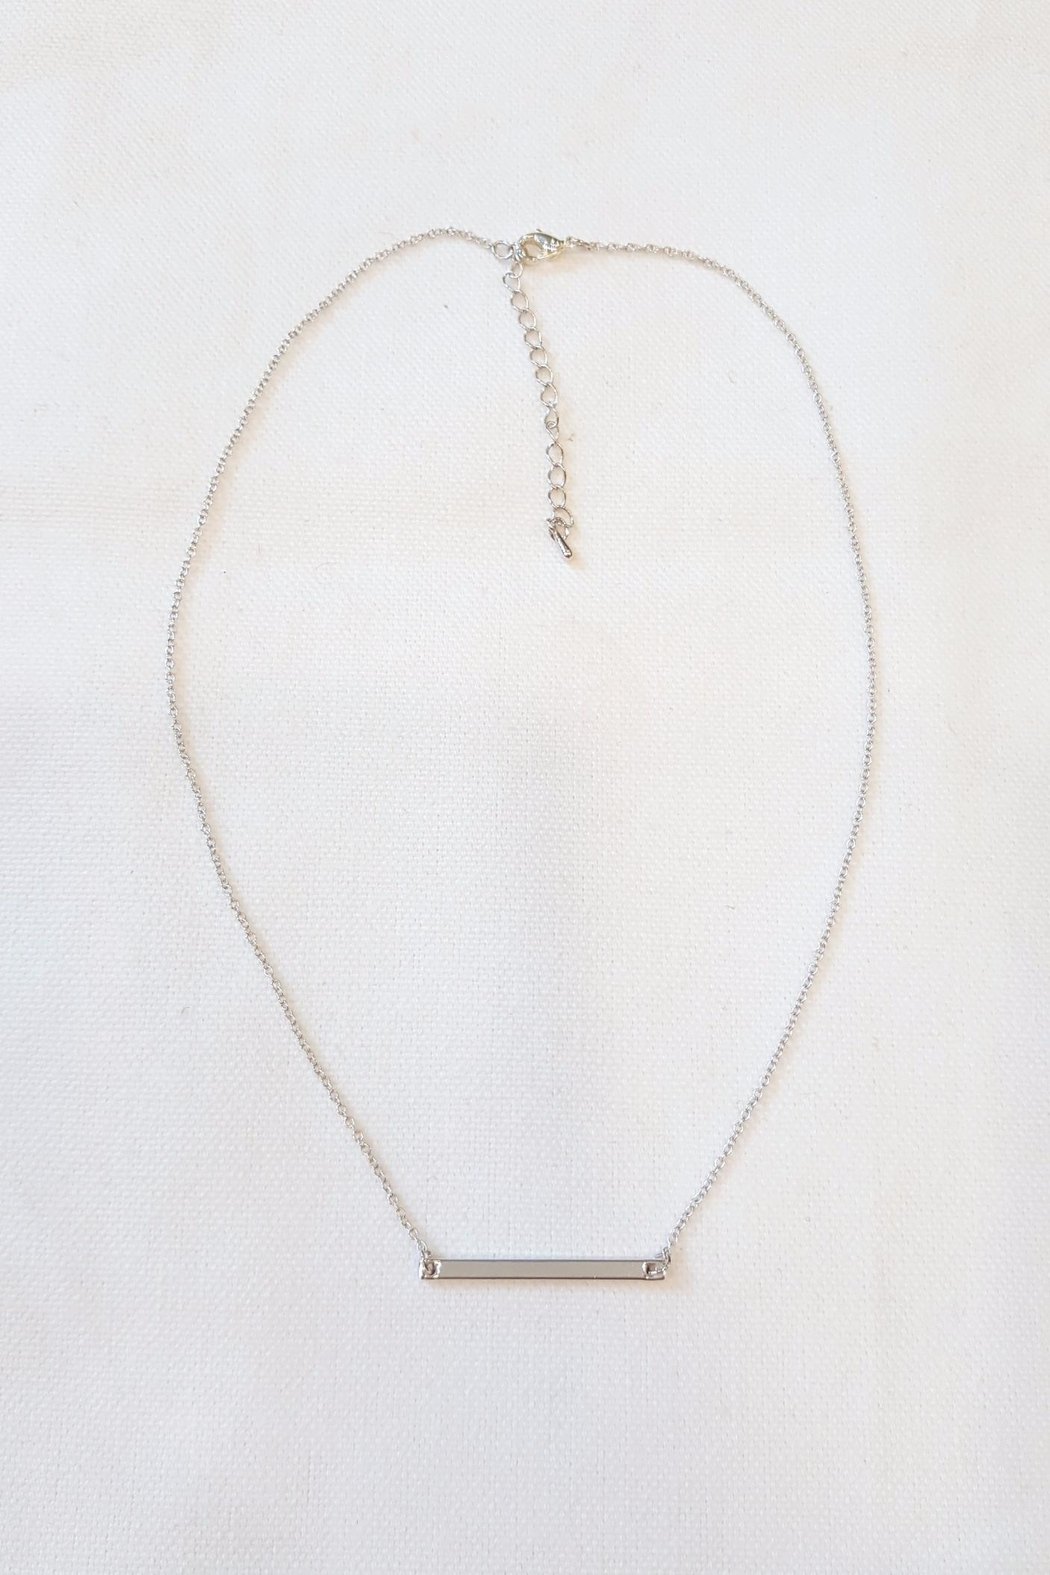 Simply Chic Delicate Bar Necklace - Main Image